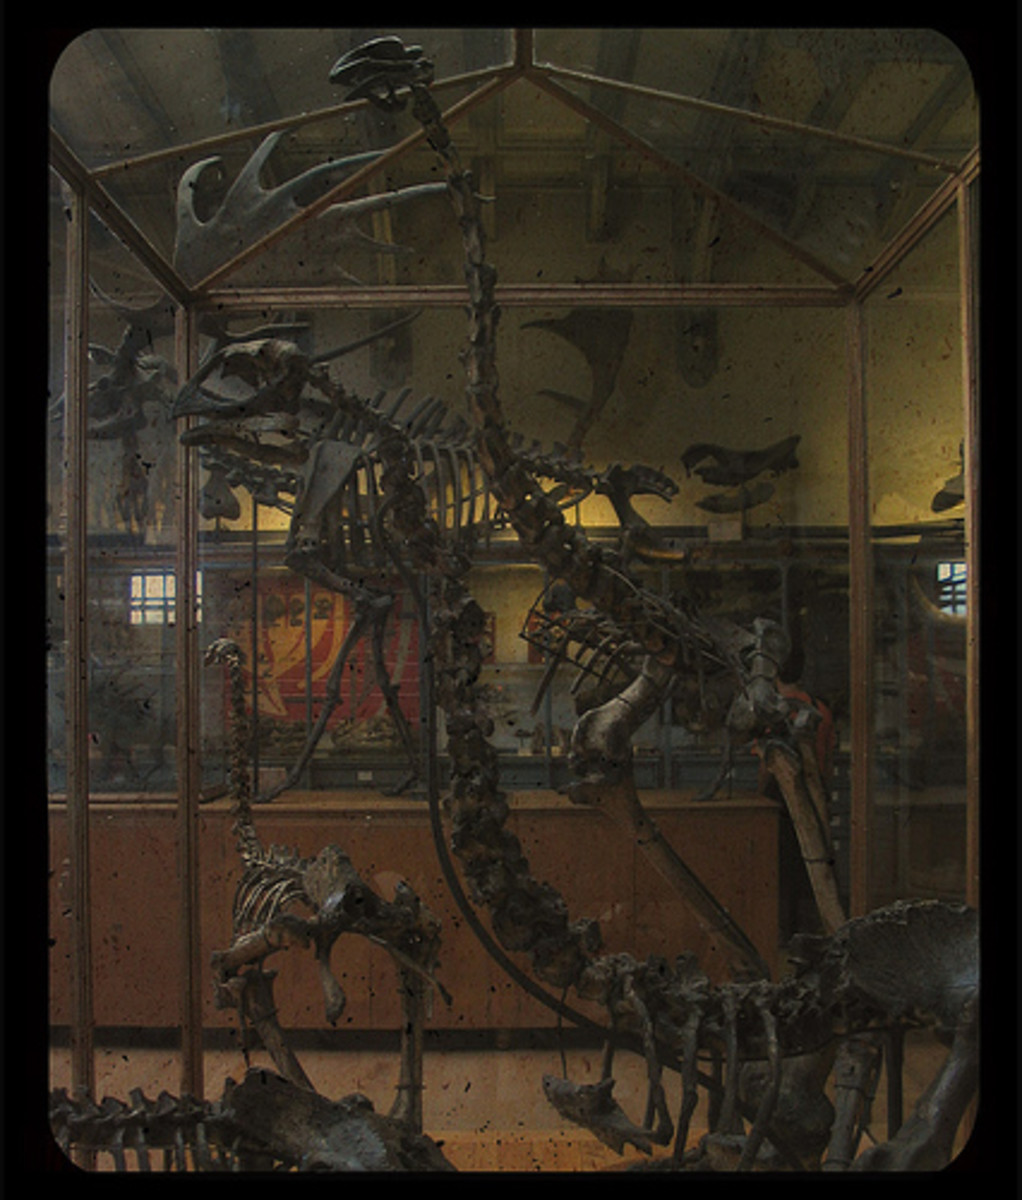 Hunted to extinction, only these skeletons of the magnificent Elephant Birds of Madagascar now remain.